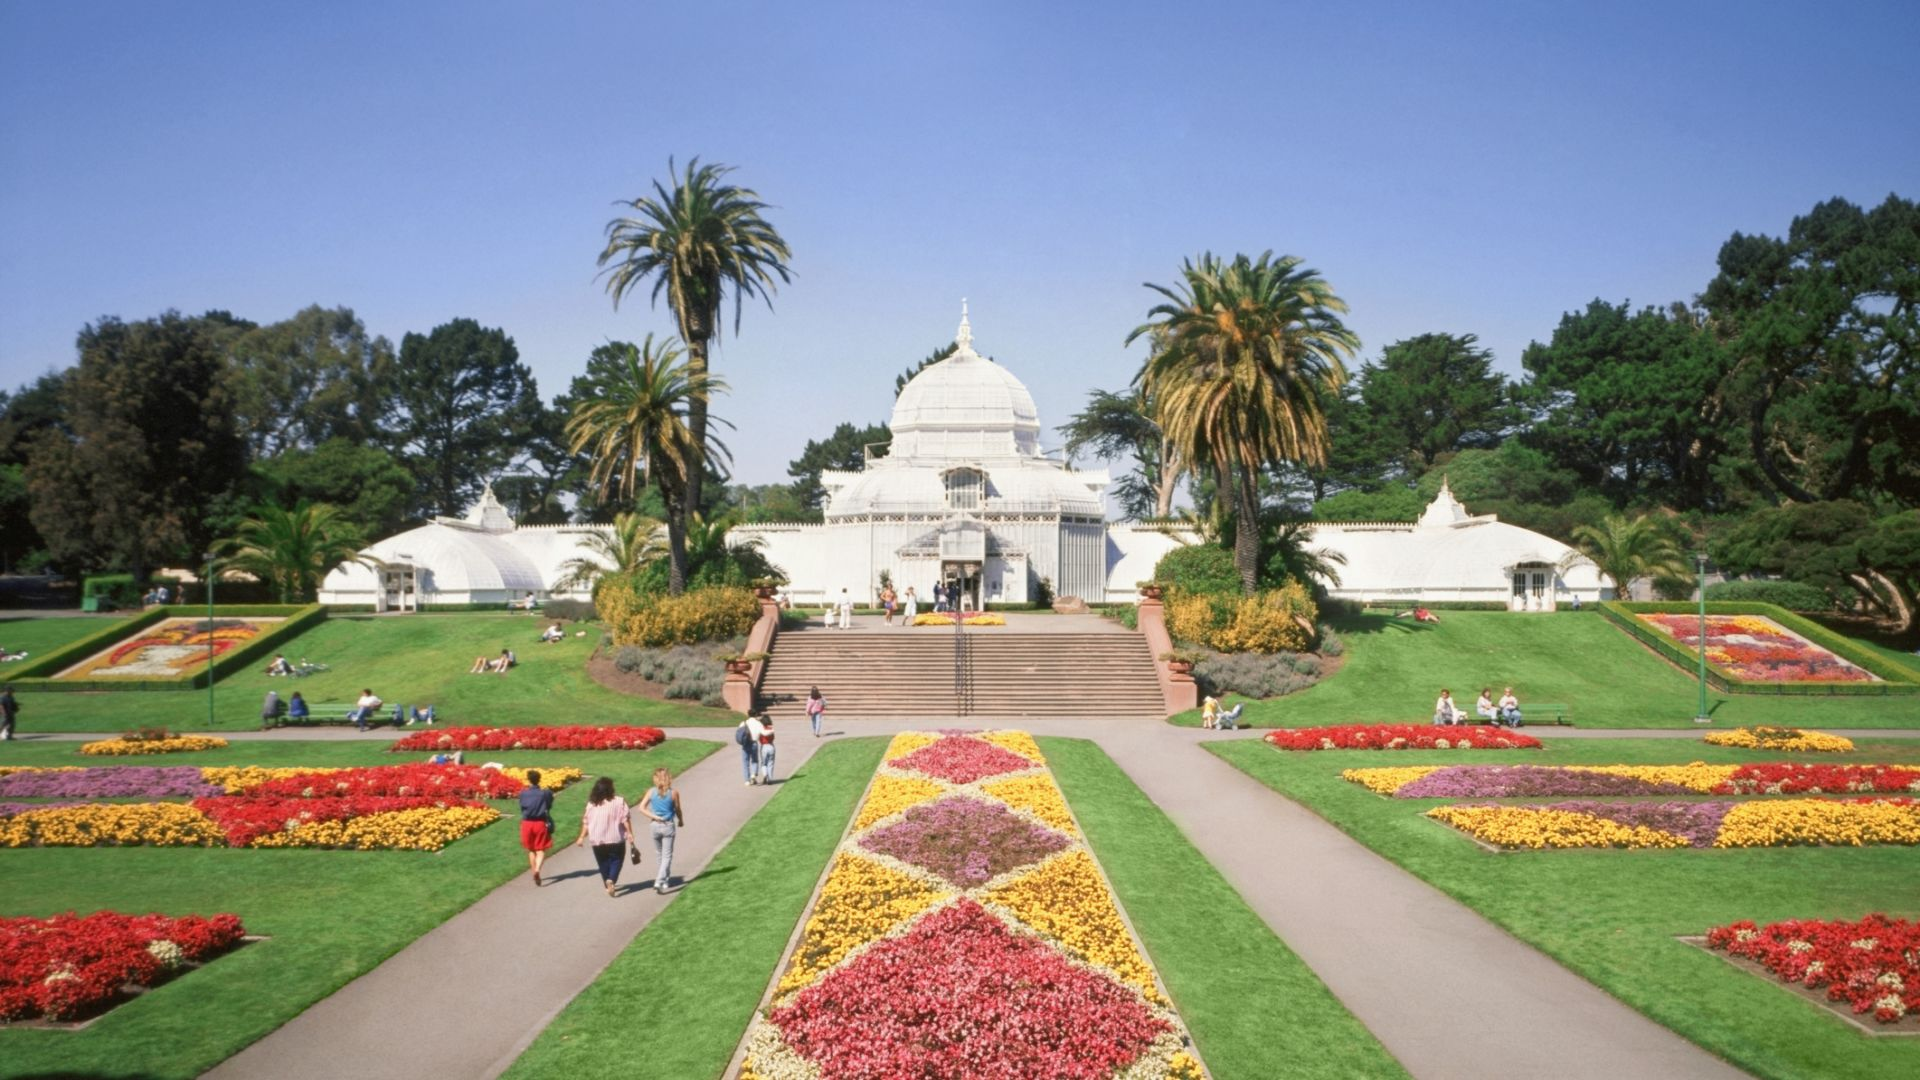 A Group Of Lawn Chairs Sitting On Top Of A Grass Covered Field With Conservatory Of Flowers In The Background